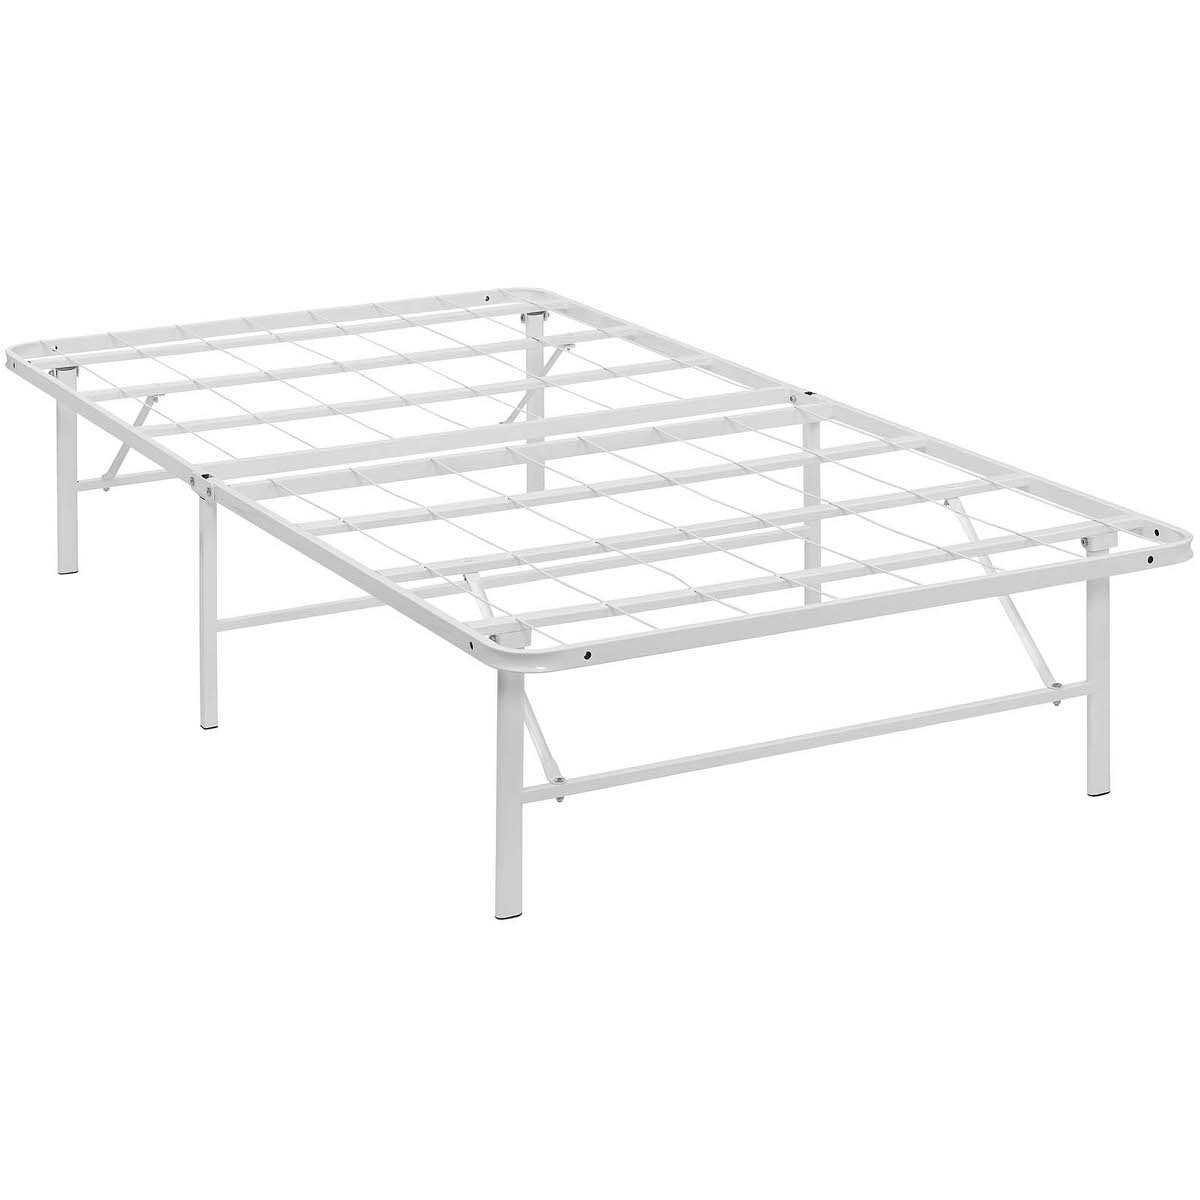 Horizon Twin Stainless Steel Bed Frame White by Modern Living